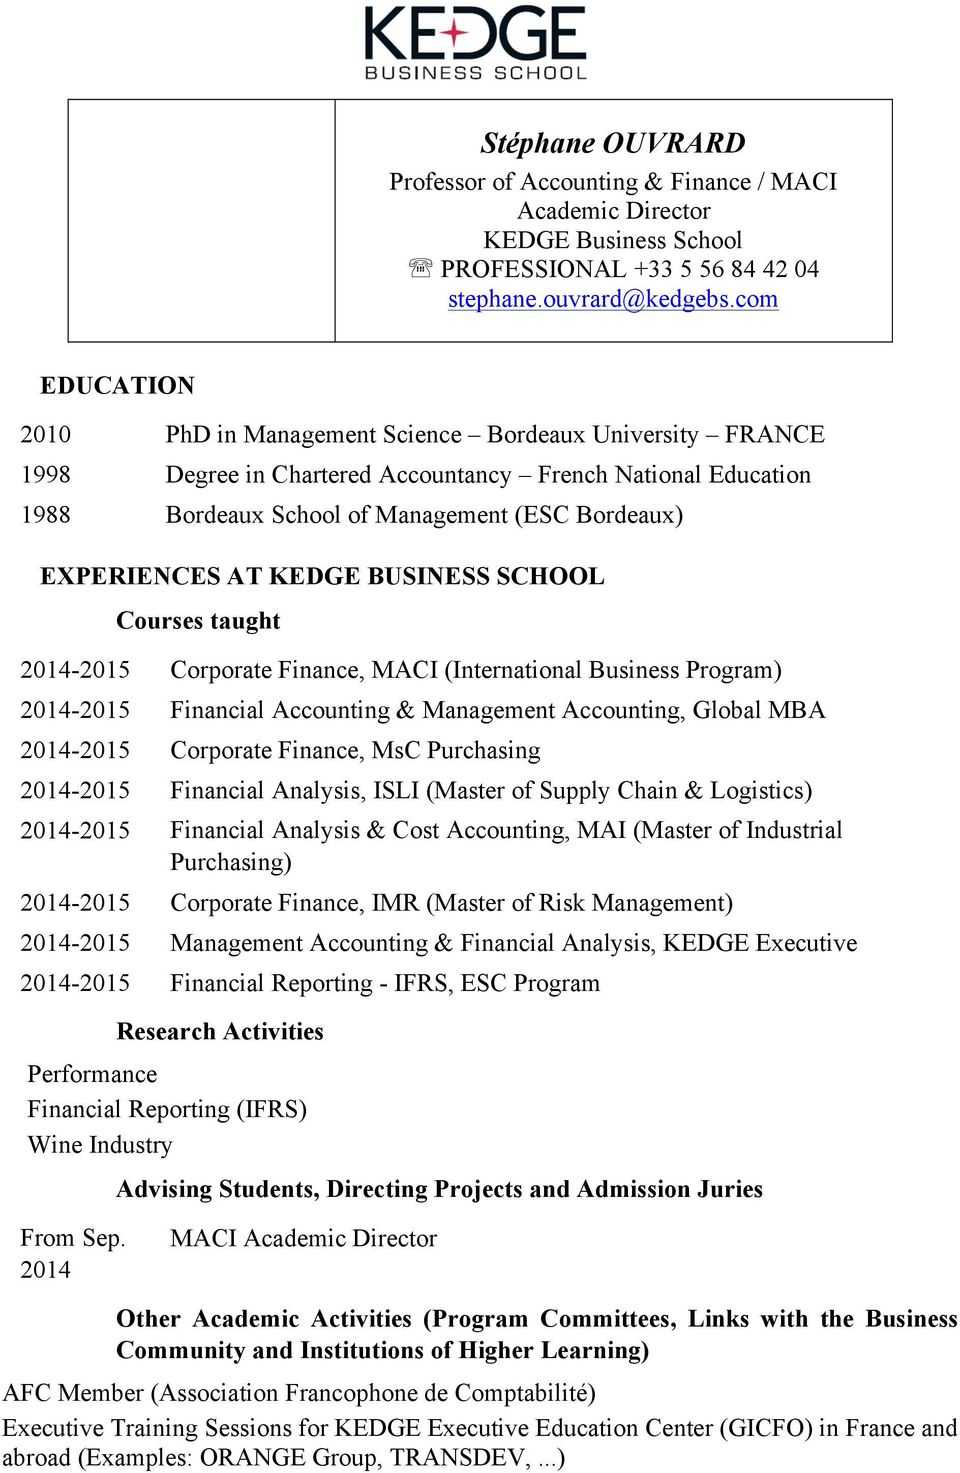 KEDGE BUSINESS SCHOOL Courses taught 2014-2015 Corporate Finance, MACI (International Business Program) 2014-2015 Financial Accounting & Management Accounting, Global MBA 2014-2015 Corporate Finance,